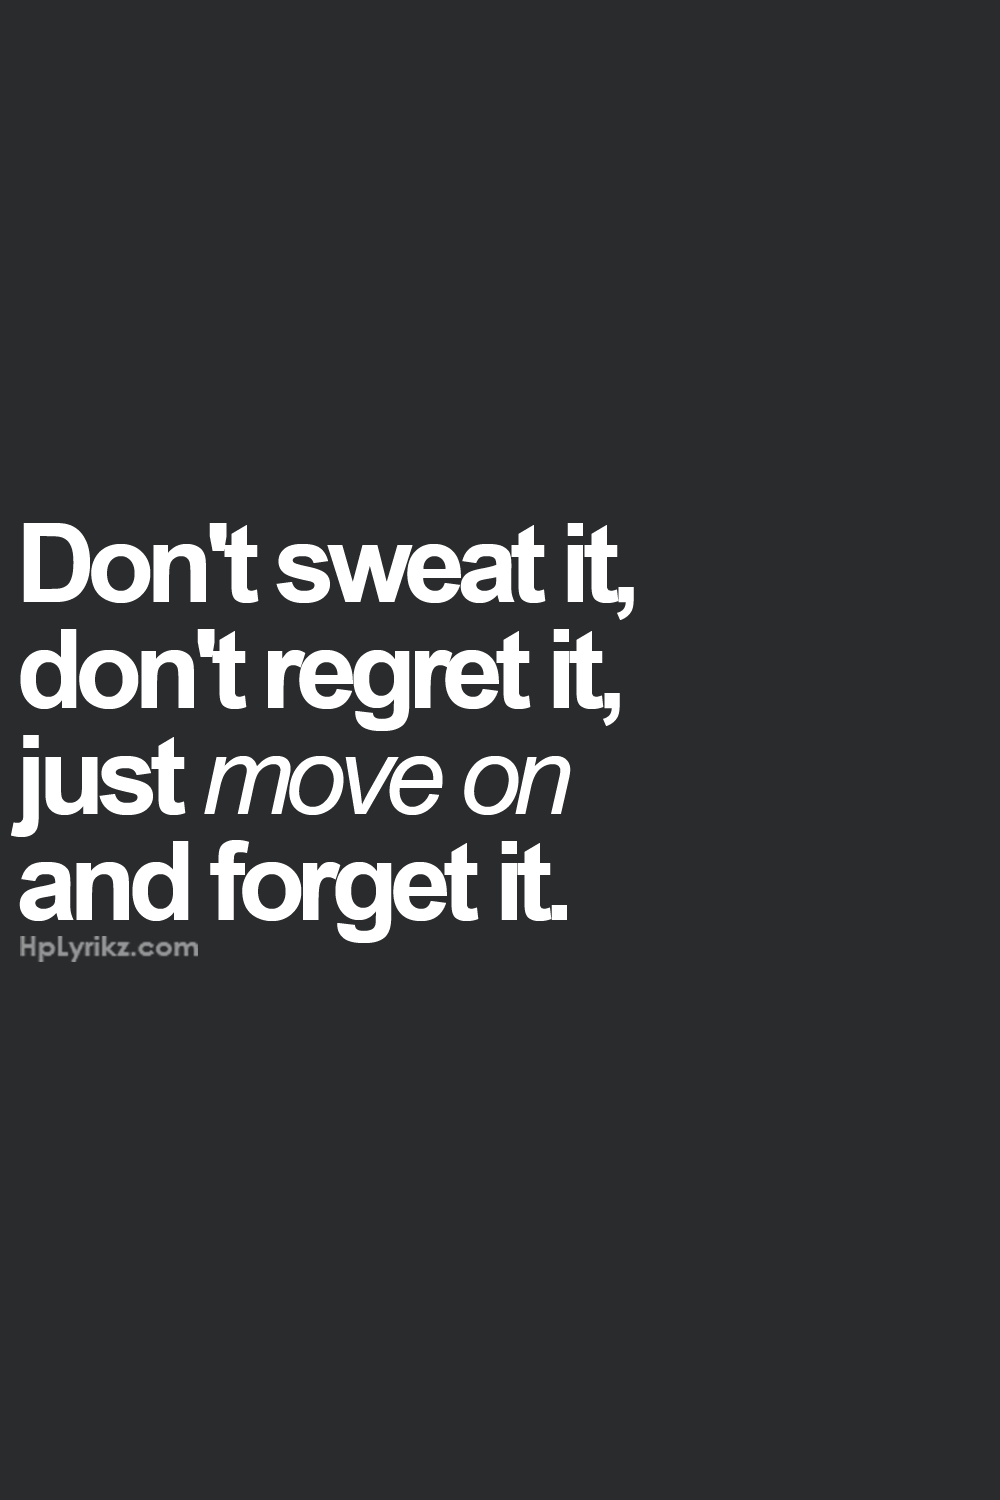 Quotes Quality Don't Sweat It Forget It Quotes  Pinterest  Quality